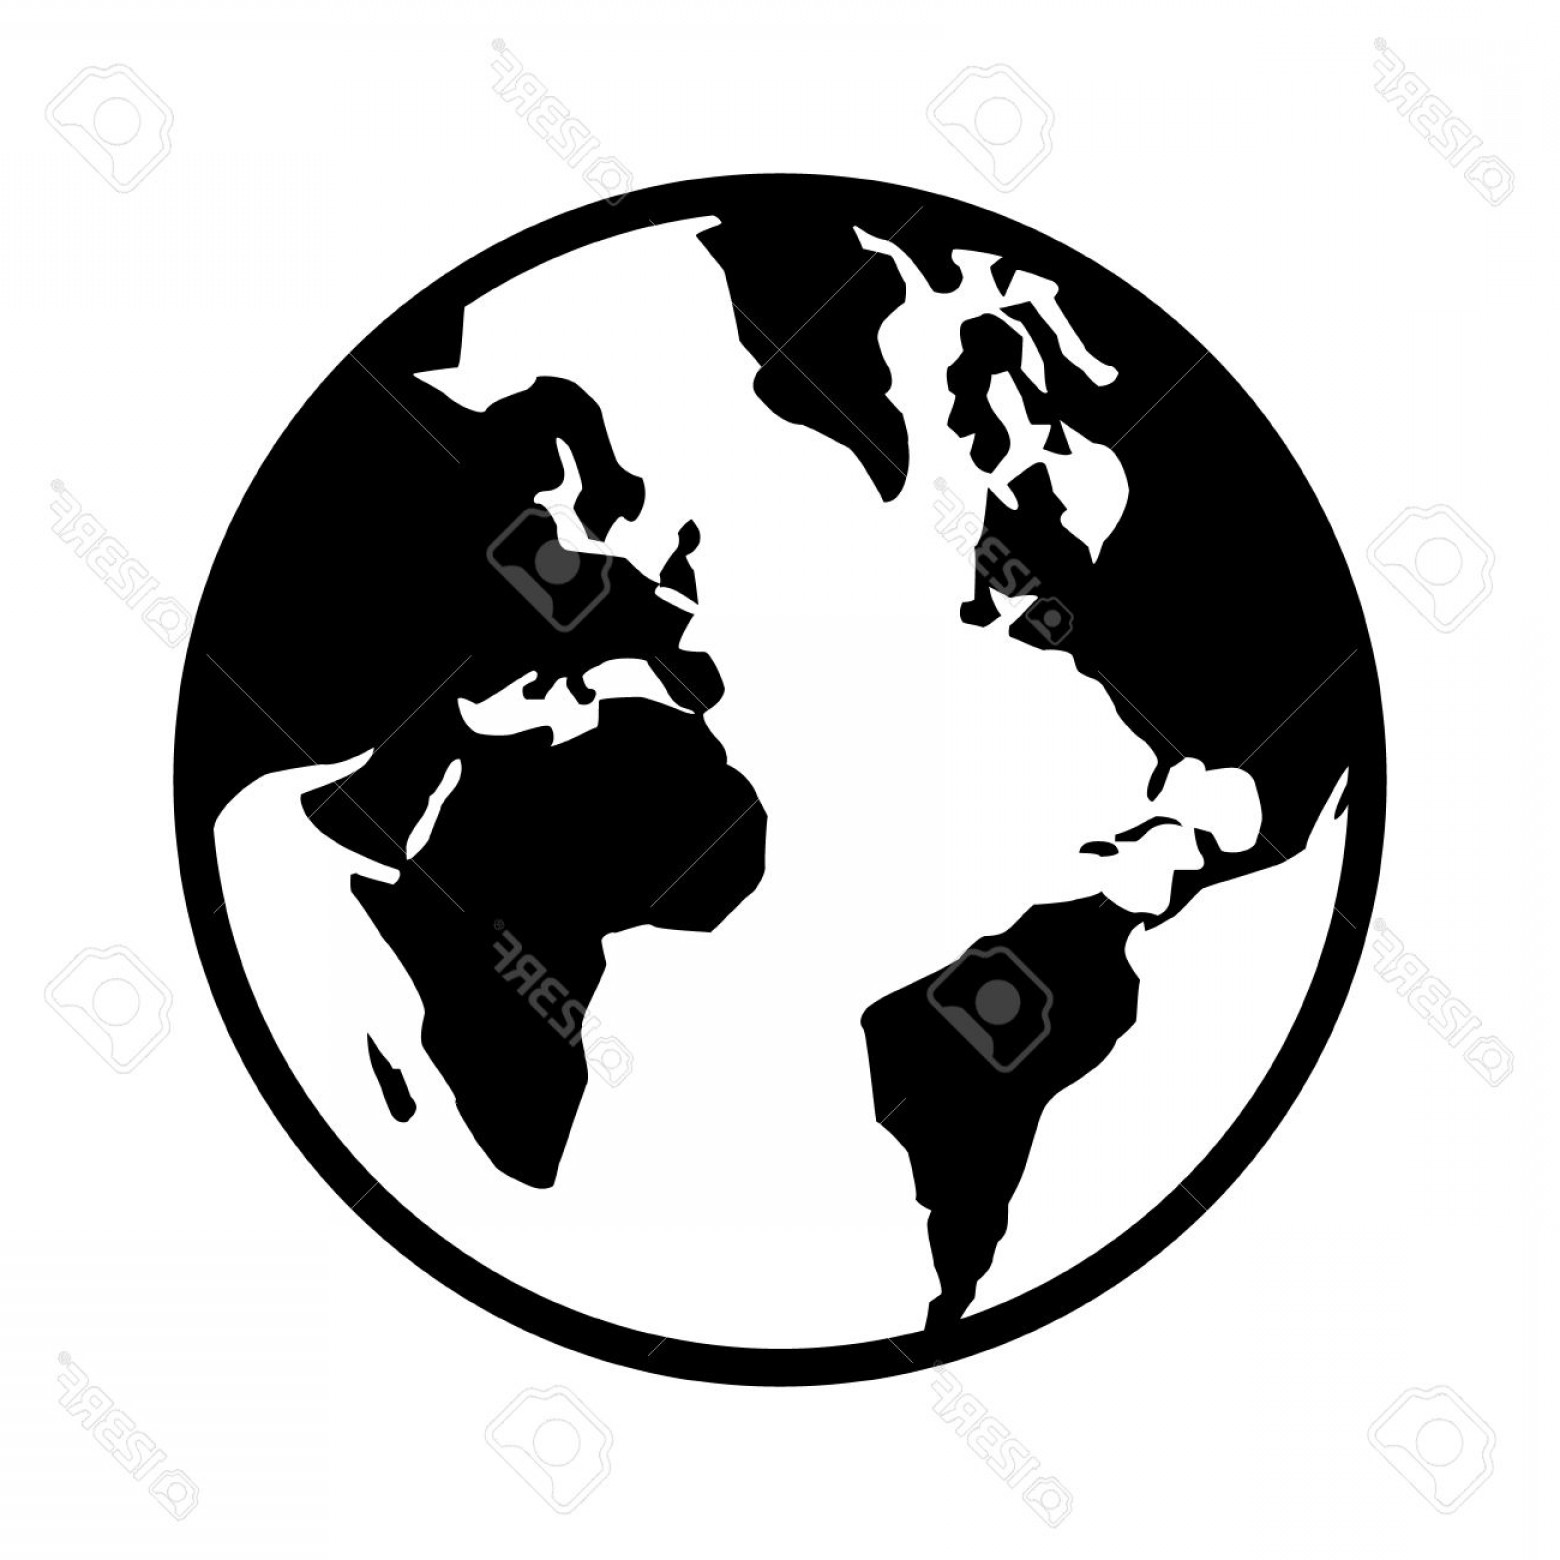 World Icon Vector Simple: Photostock Vector World Map Globe Or Planet Earth World Map Line Art Icon For Apps And Websites